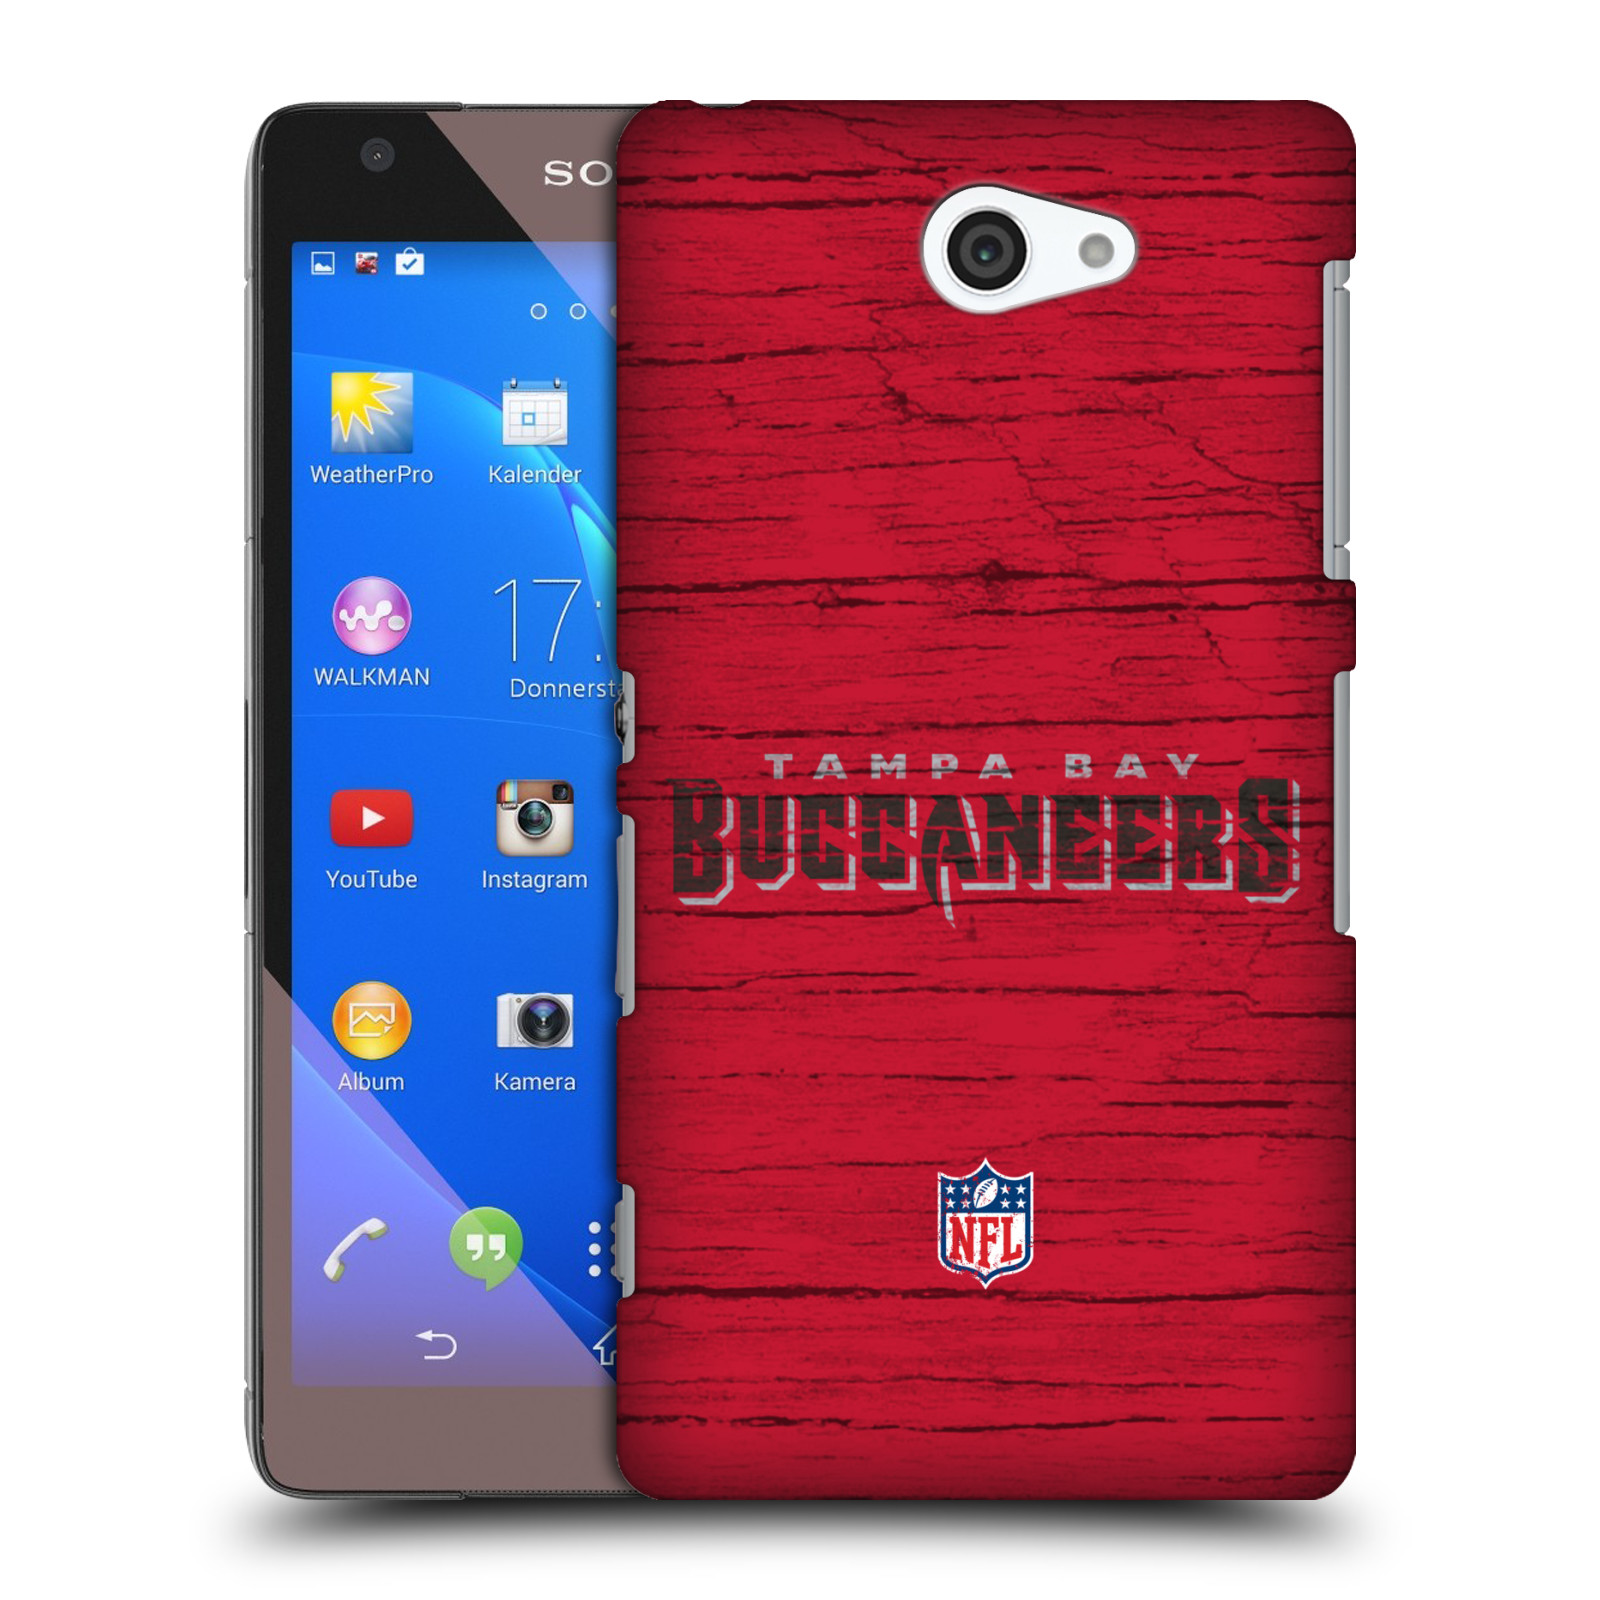 OFFICIAL NFL TAMPA BAY BUCCANEERS LOGO HARD BACK CASE FOR SONY PHONES 4